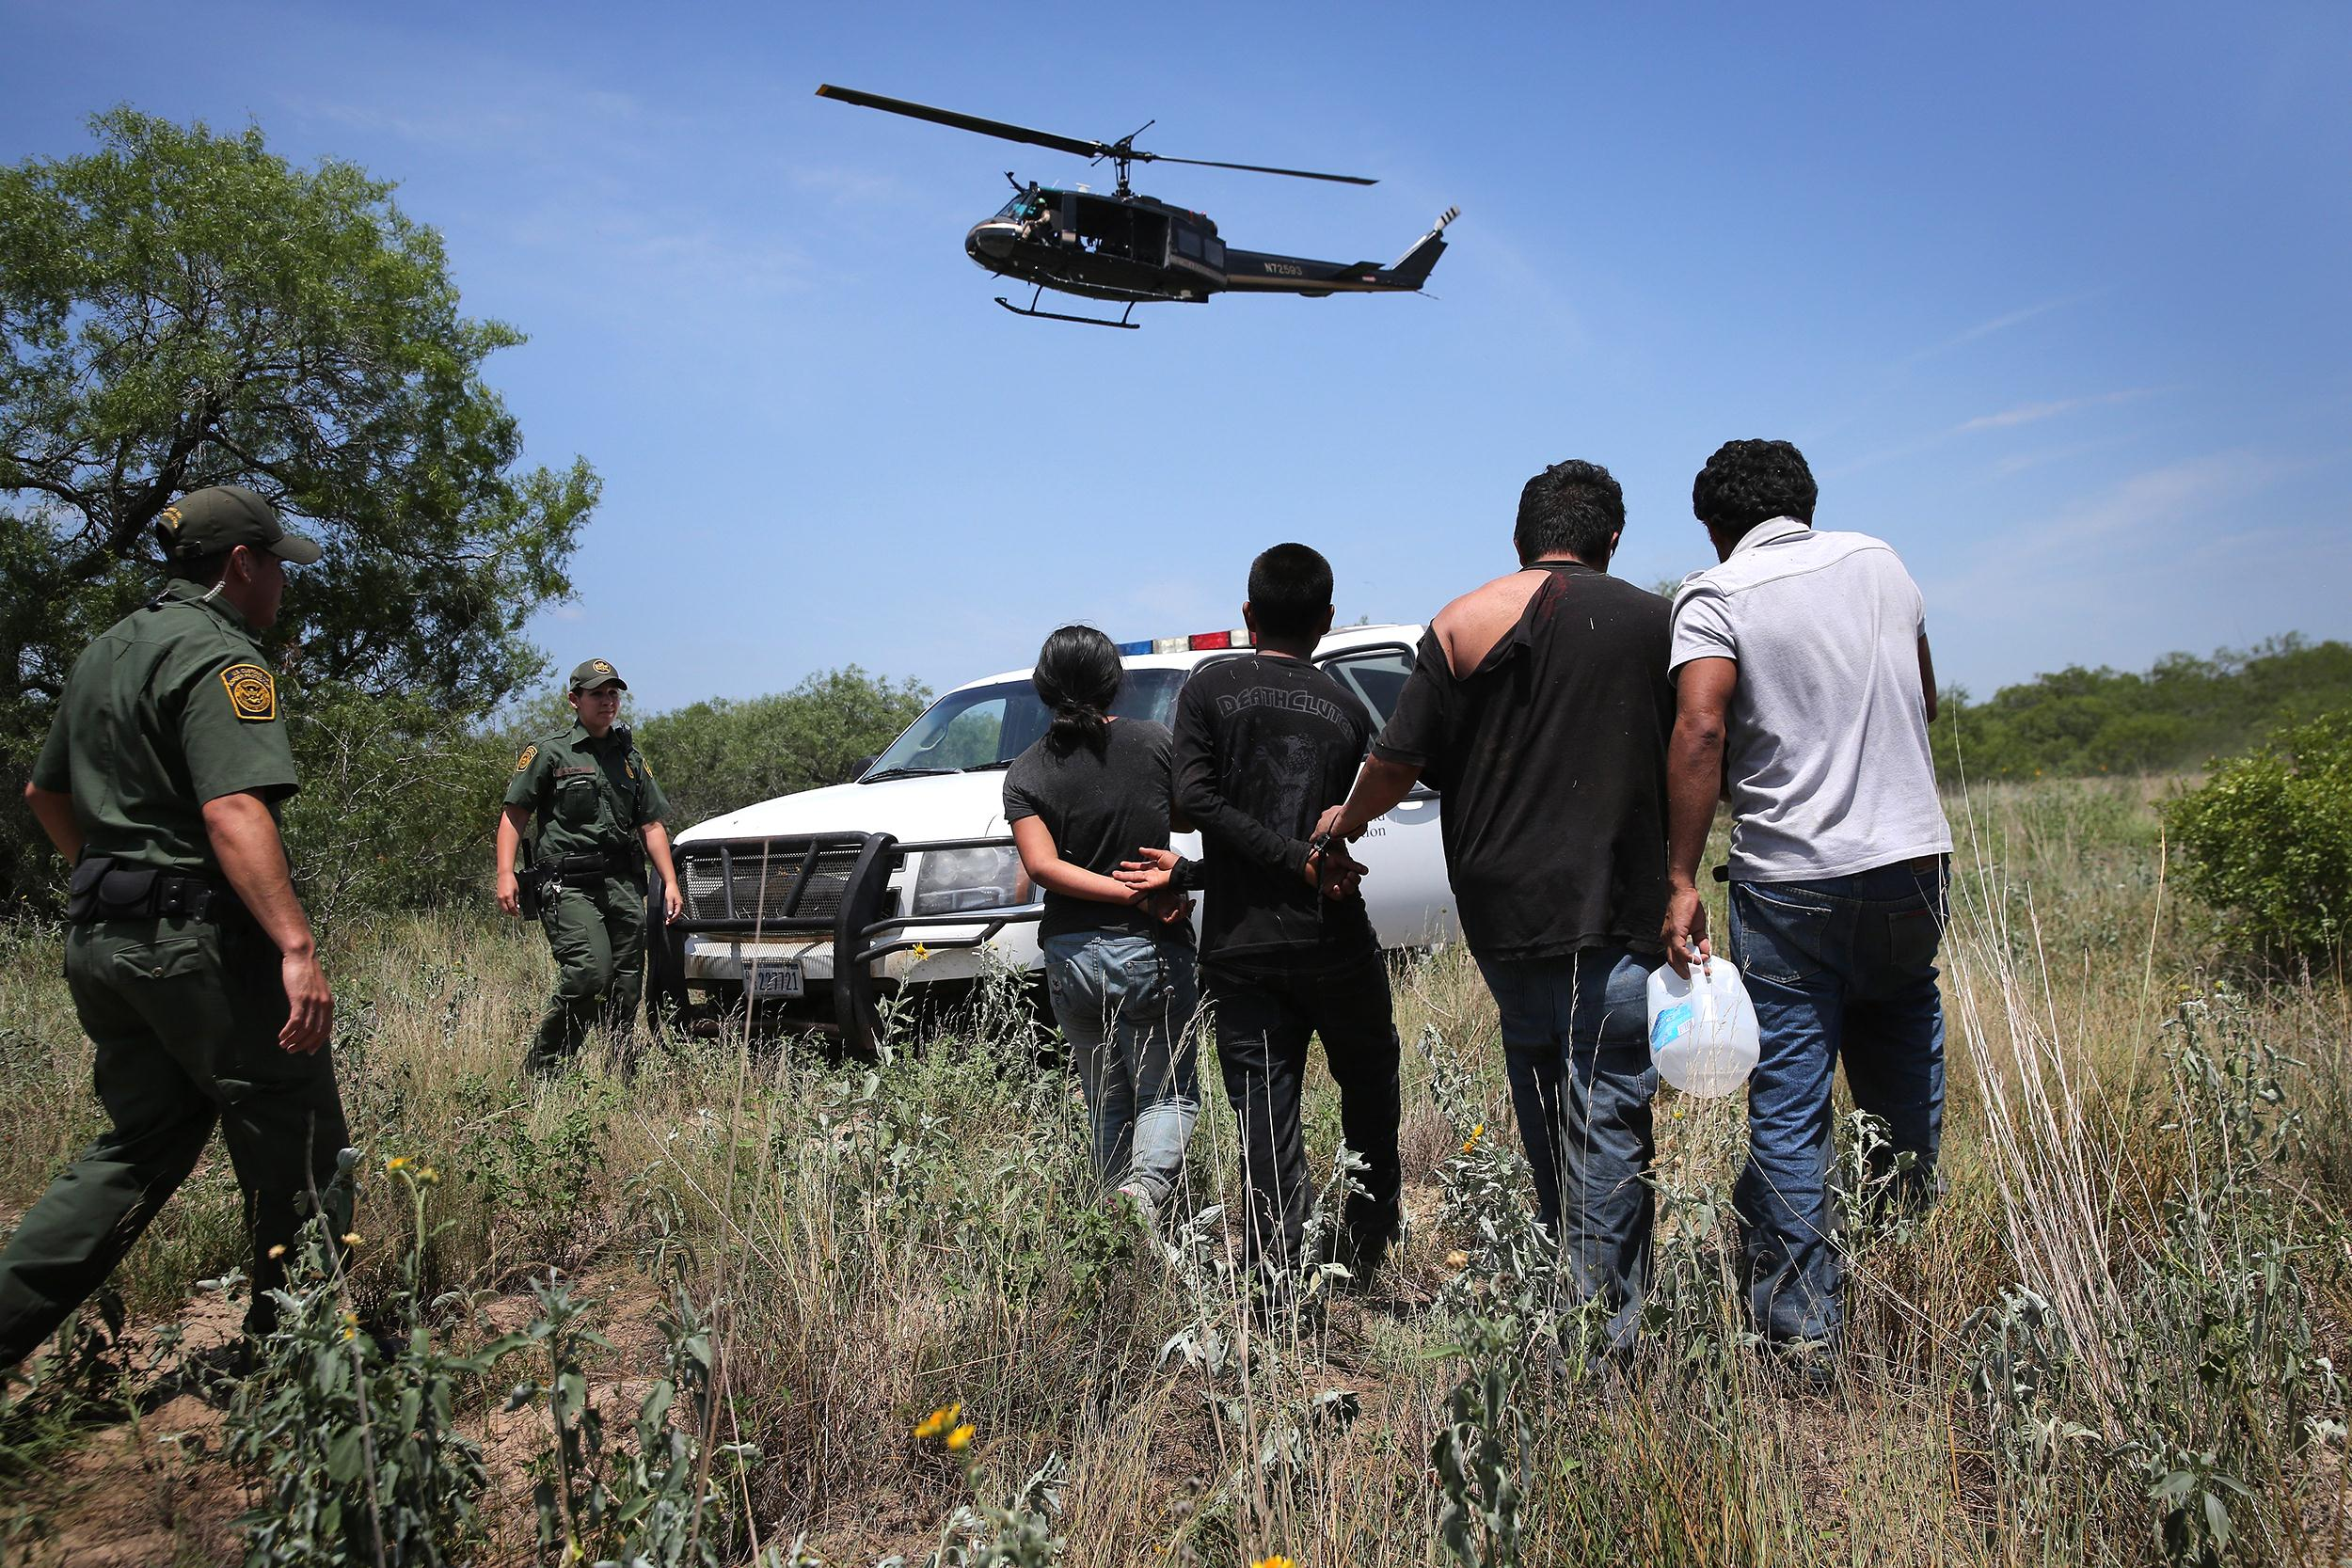 Image: U.S. Customs and Border Protection agents take undocumented immigrants into custody near Falfurrias, Texas